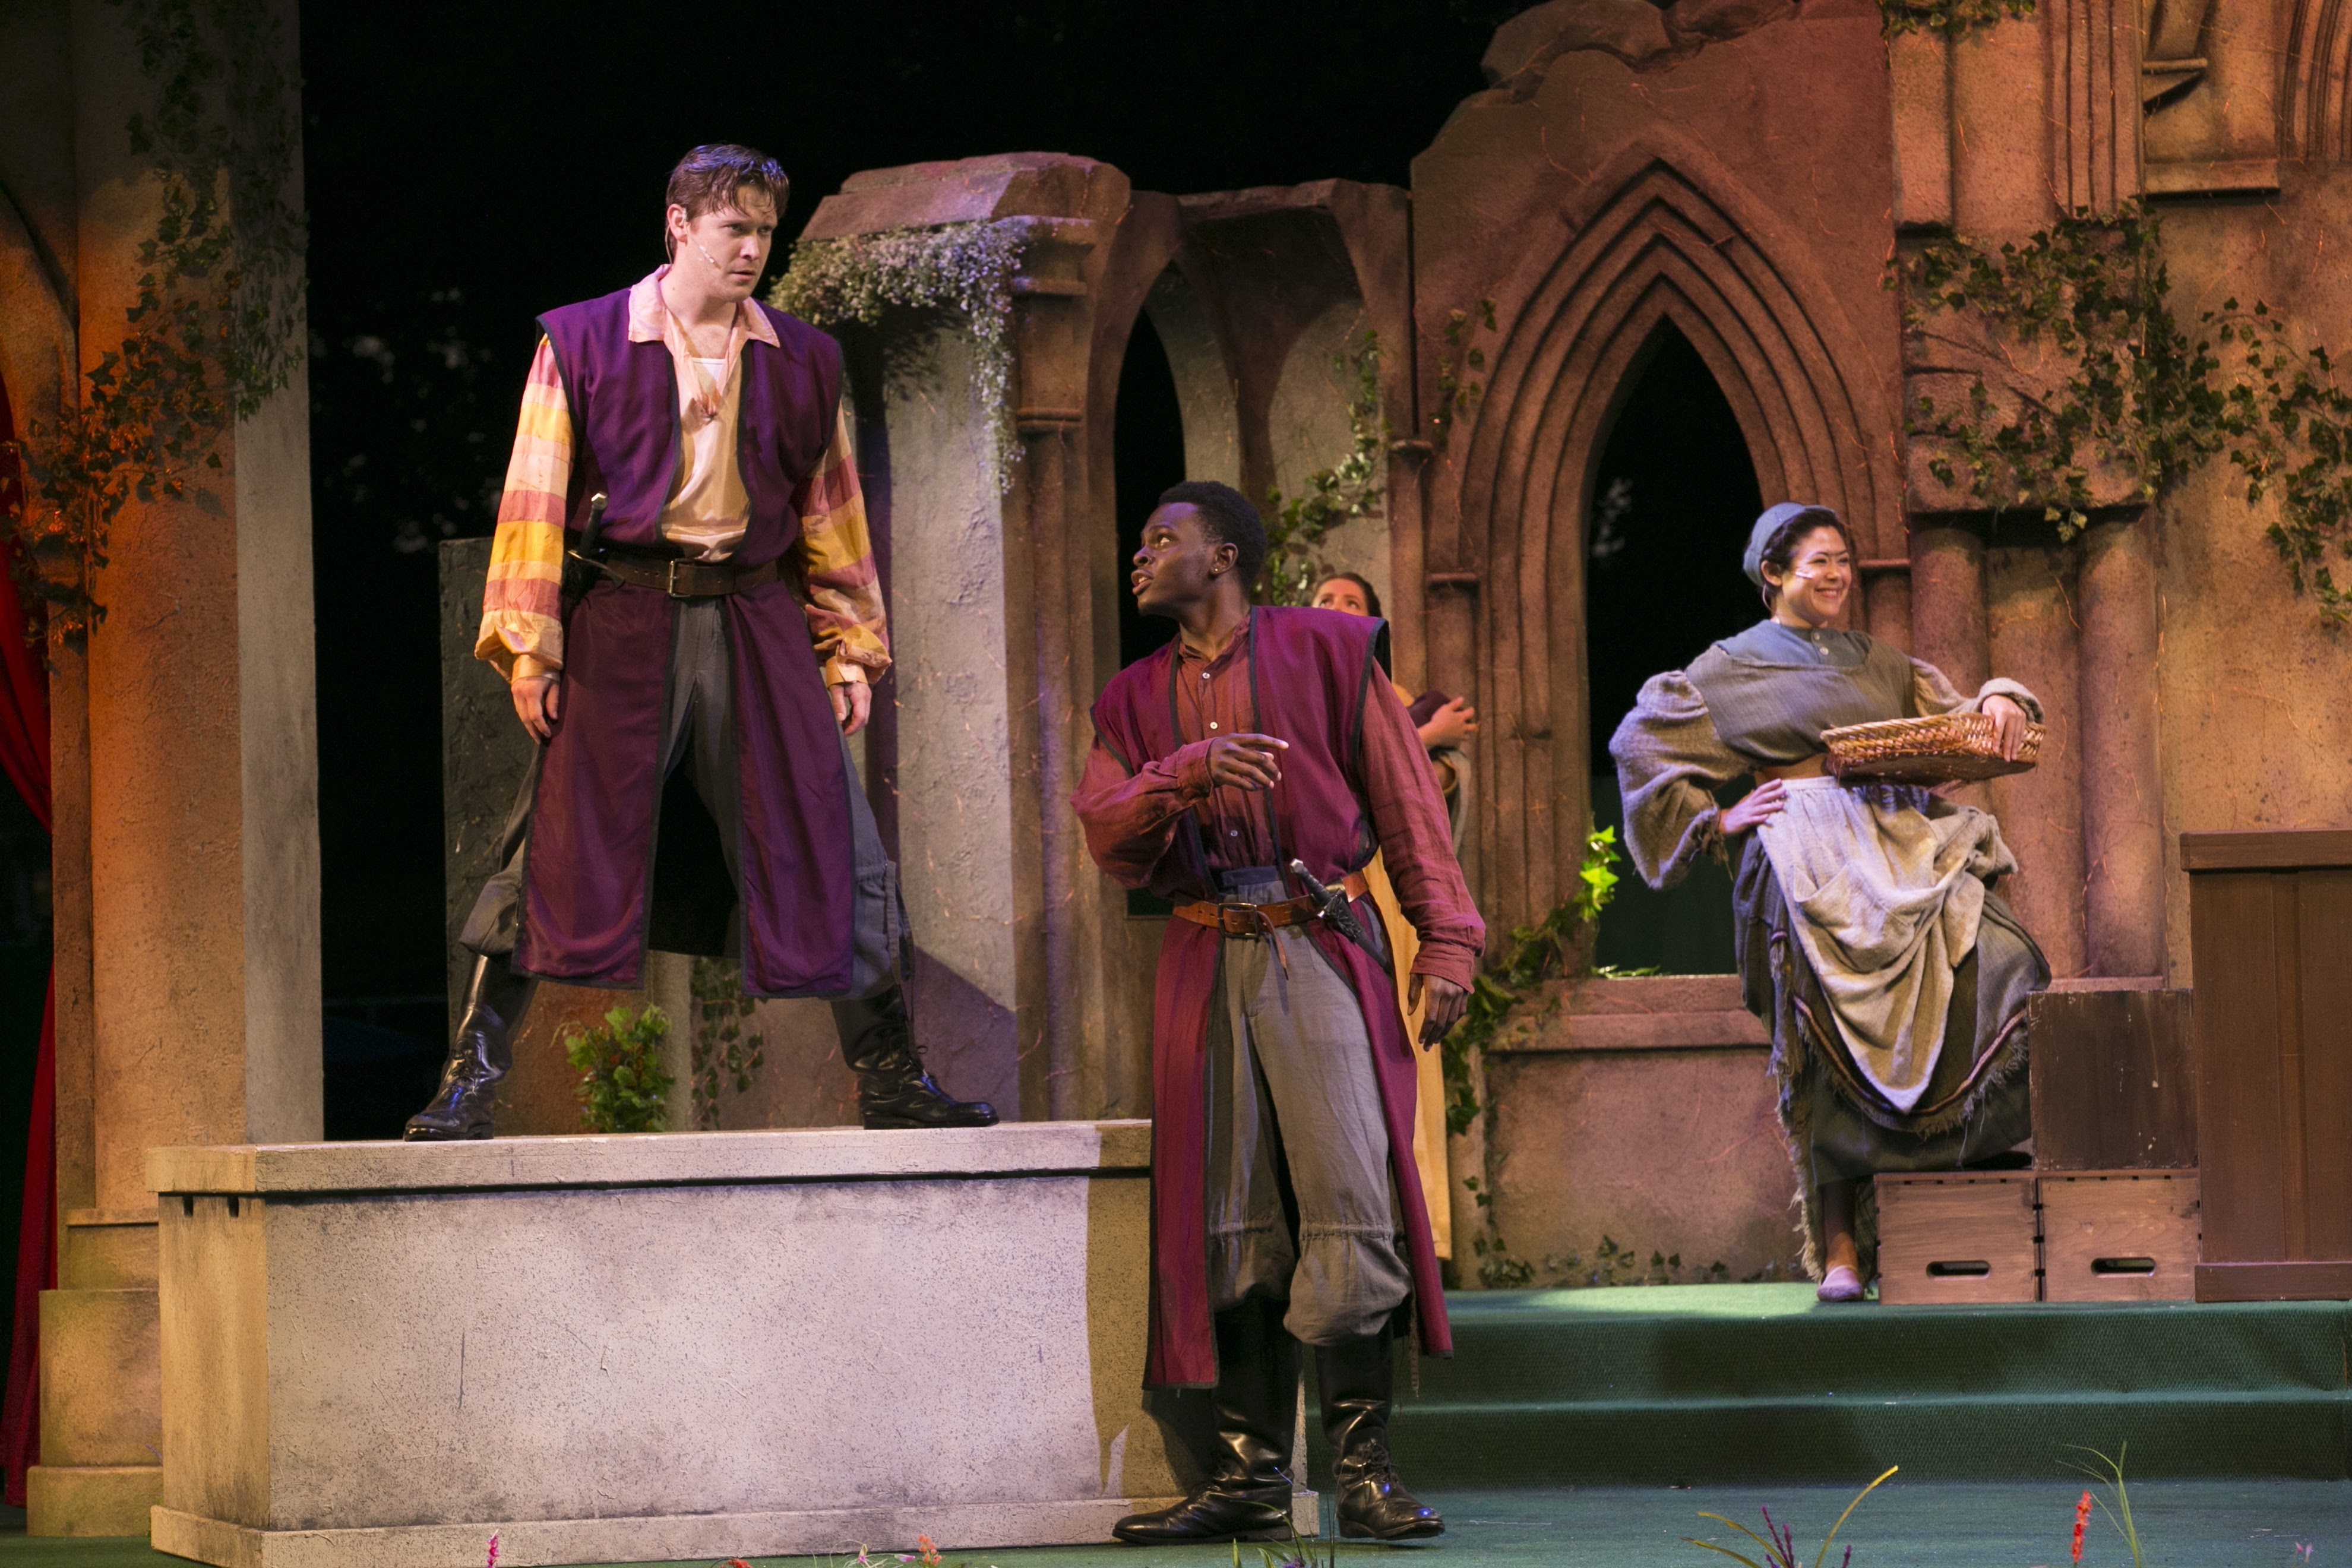 Tim Hackney (Samson), Jamil Joseph (Gregory), and Cassie Foote (Verona Citizen) in Romeo & Juliet, Shakespeare on the Common 2017-Photo by Evgenia Eliseeva